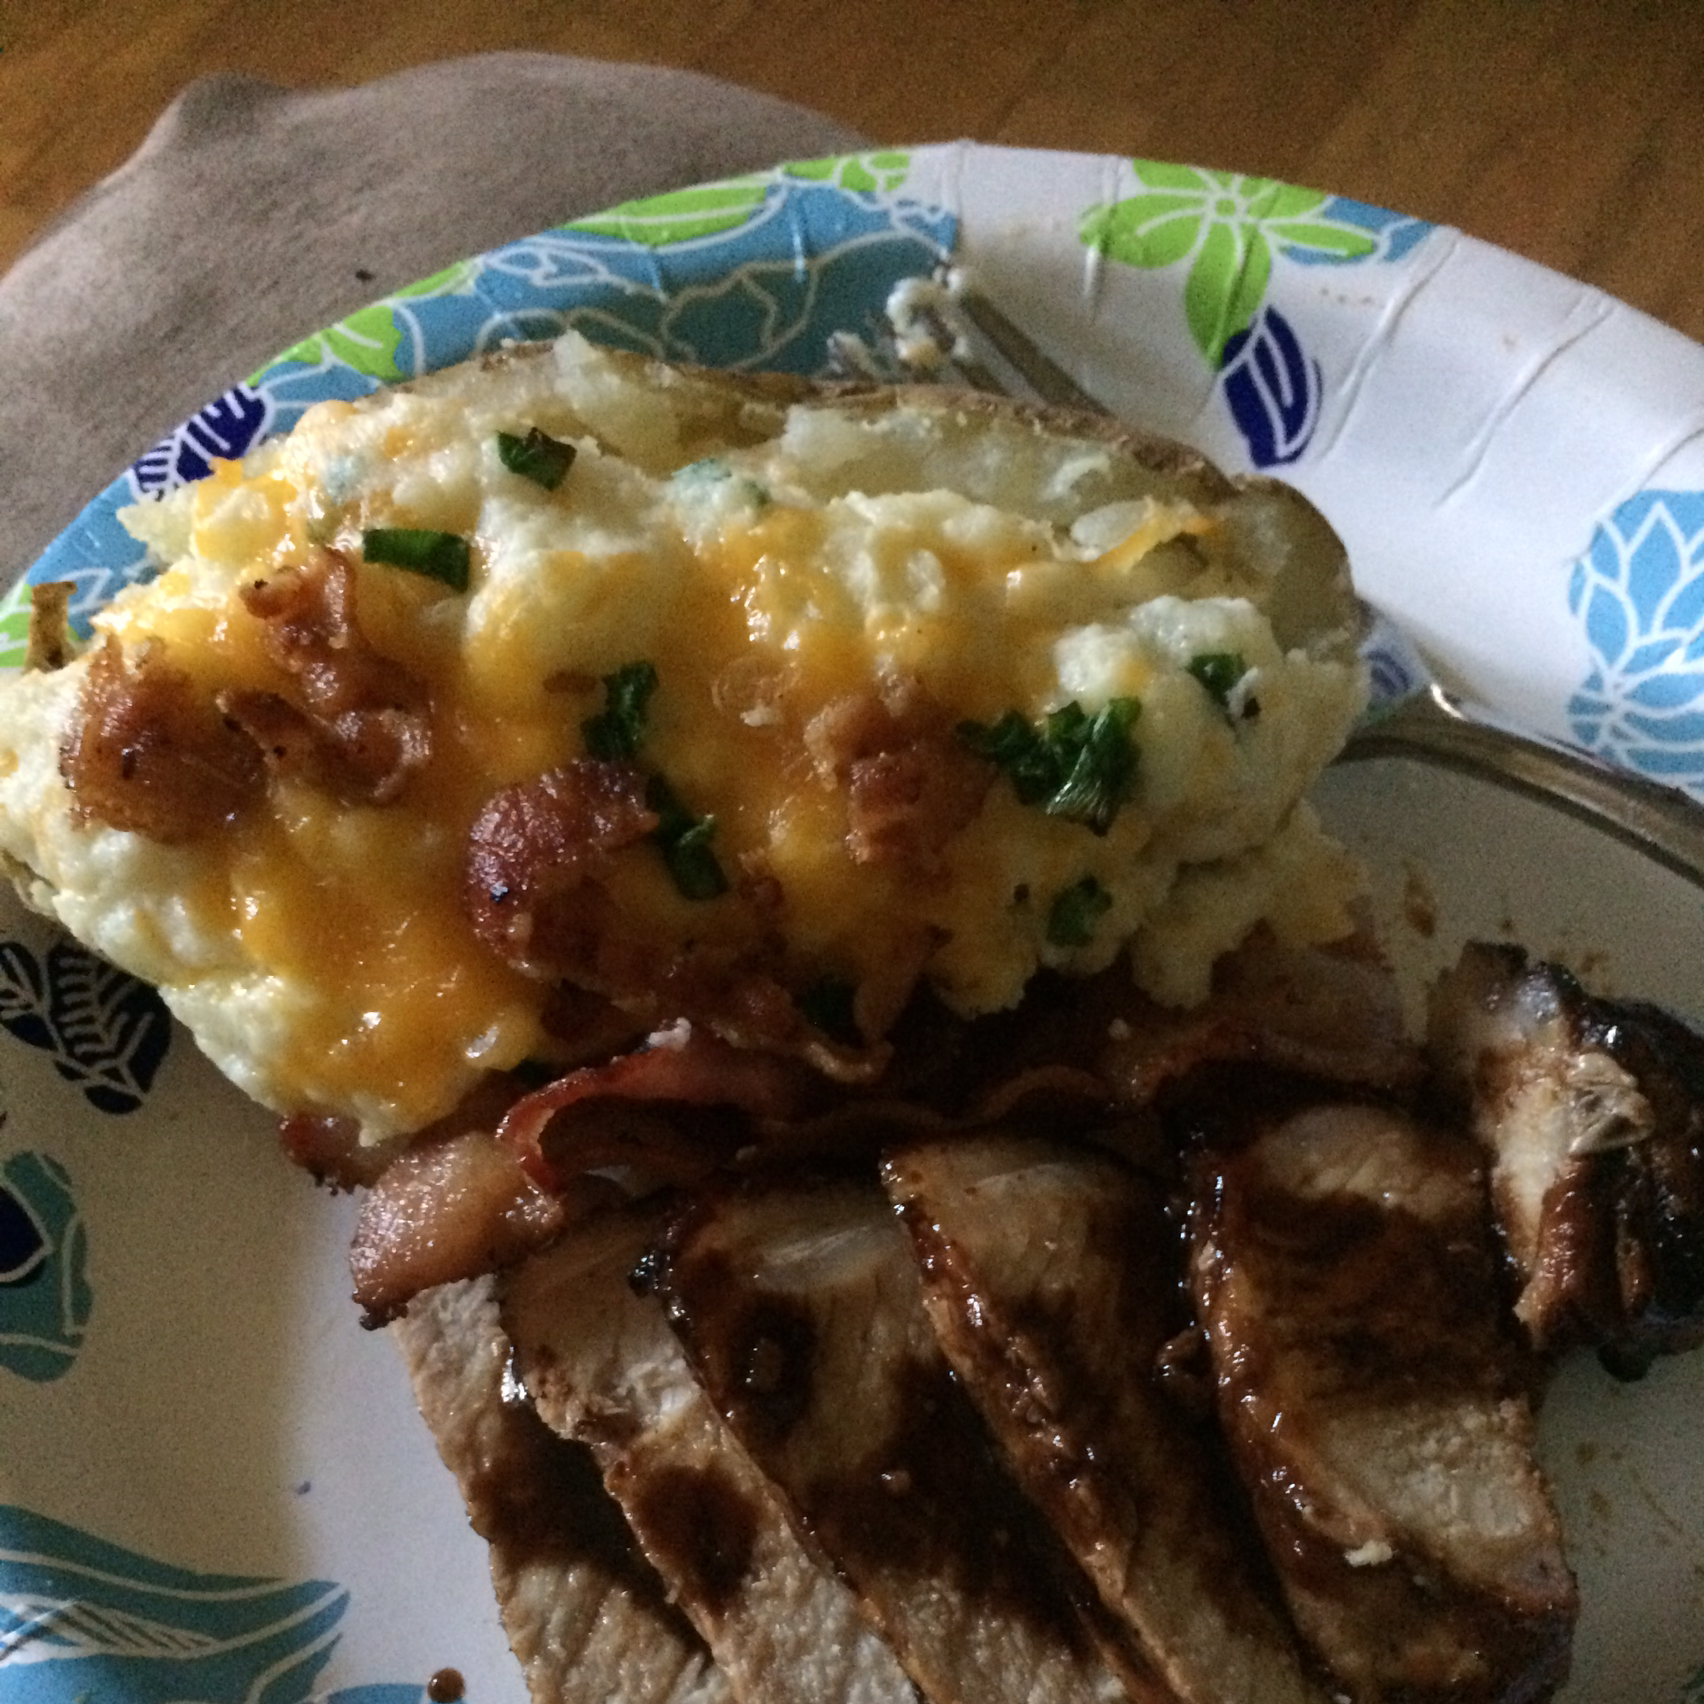 Ultimate Twice Baked Potatoes Mary Spano-Hurle